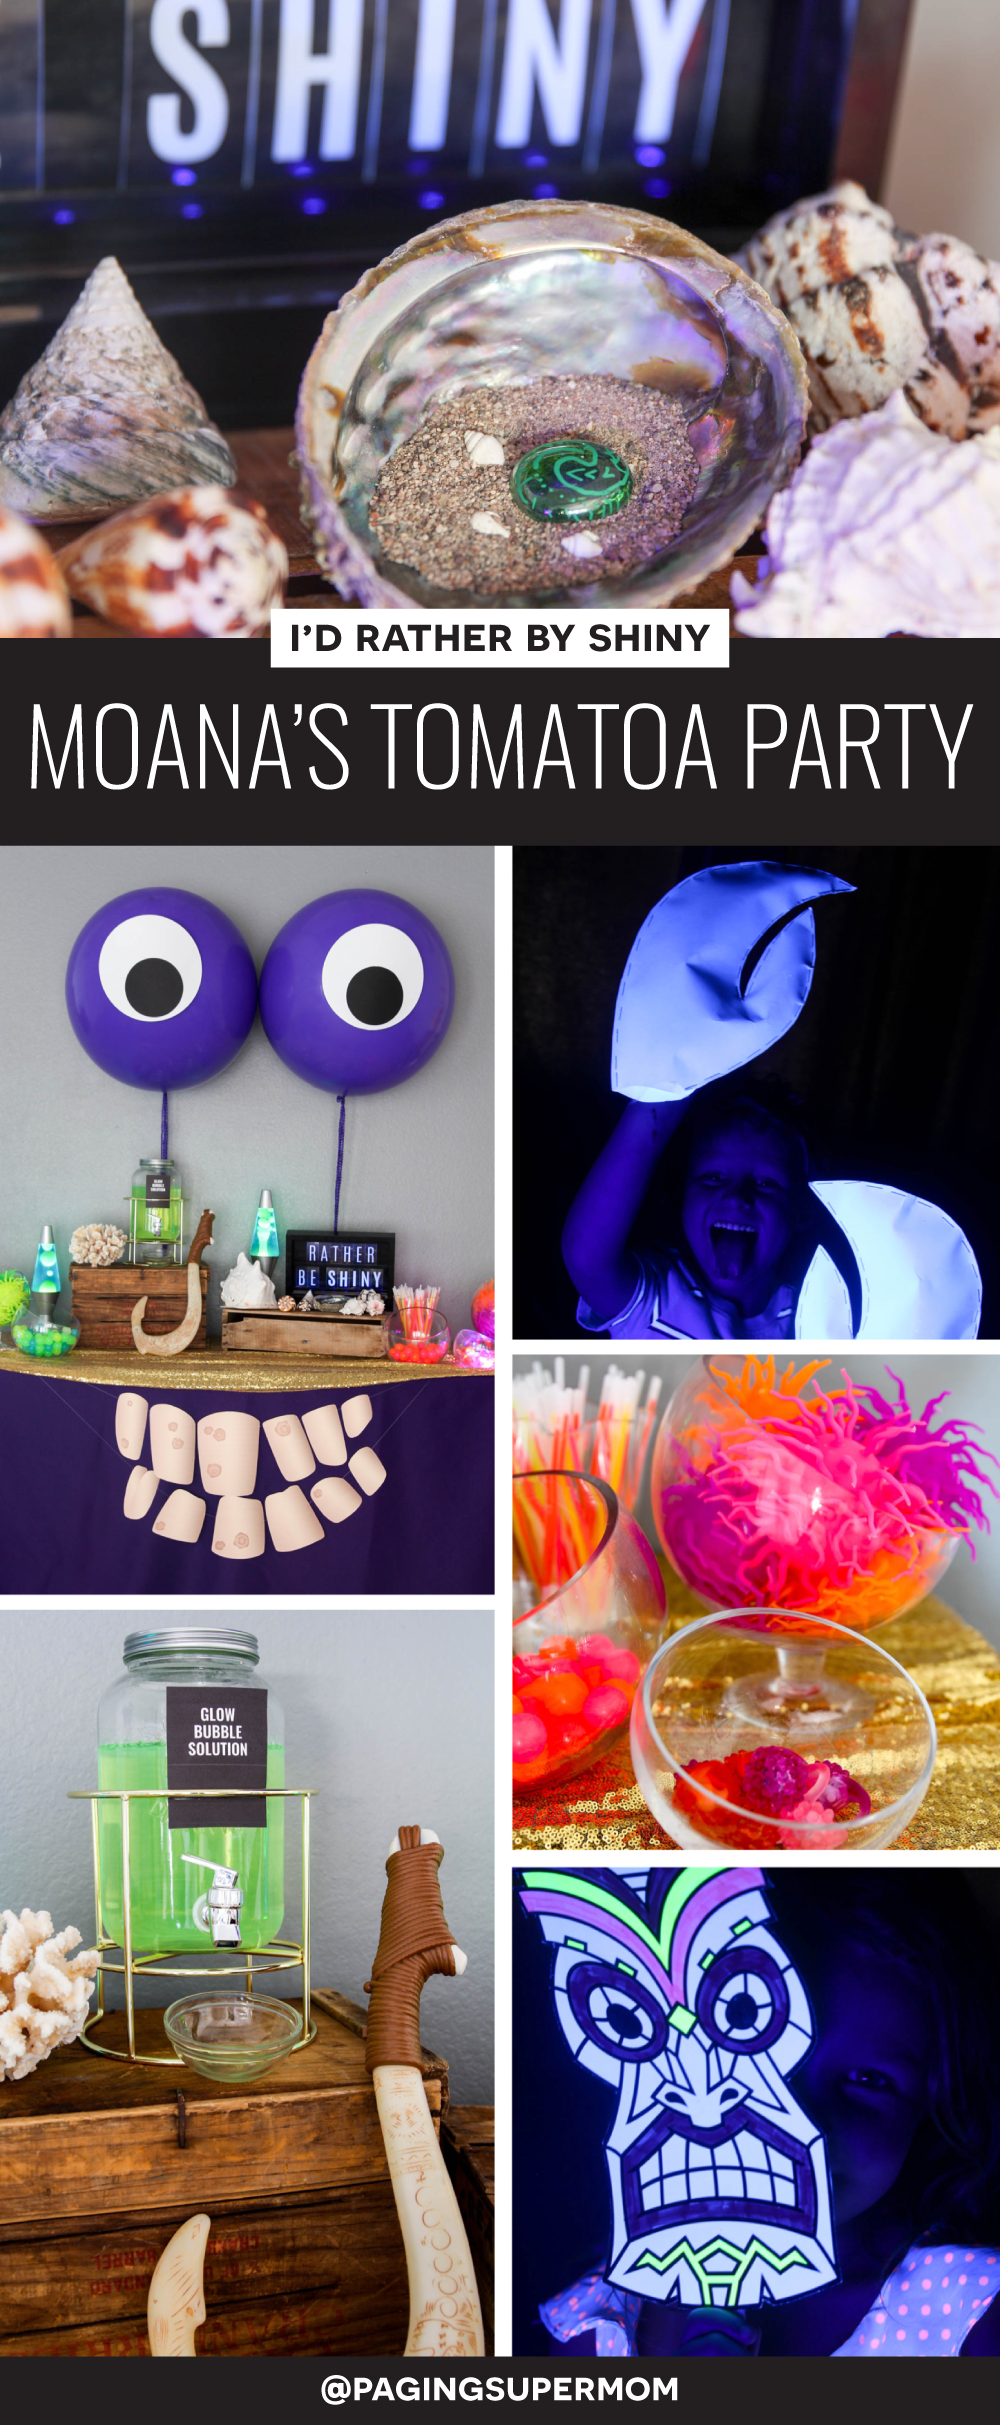 SO COOL! Moana Tomatoa Party - Moana Shiny Party based on the Realm of Monsters in Moana movie via @PagingSupermom